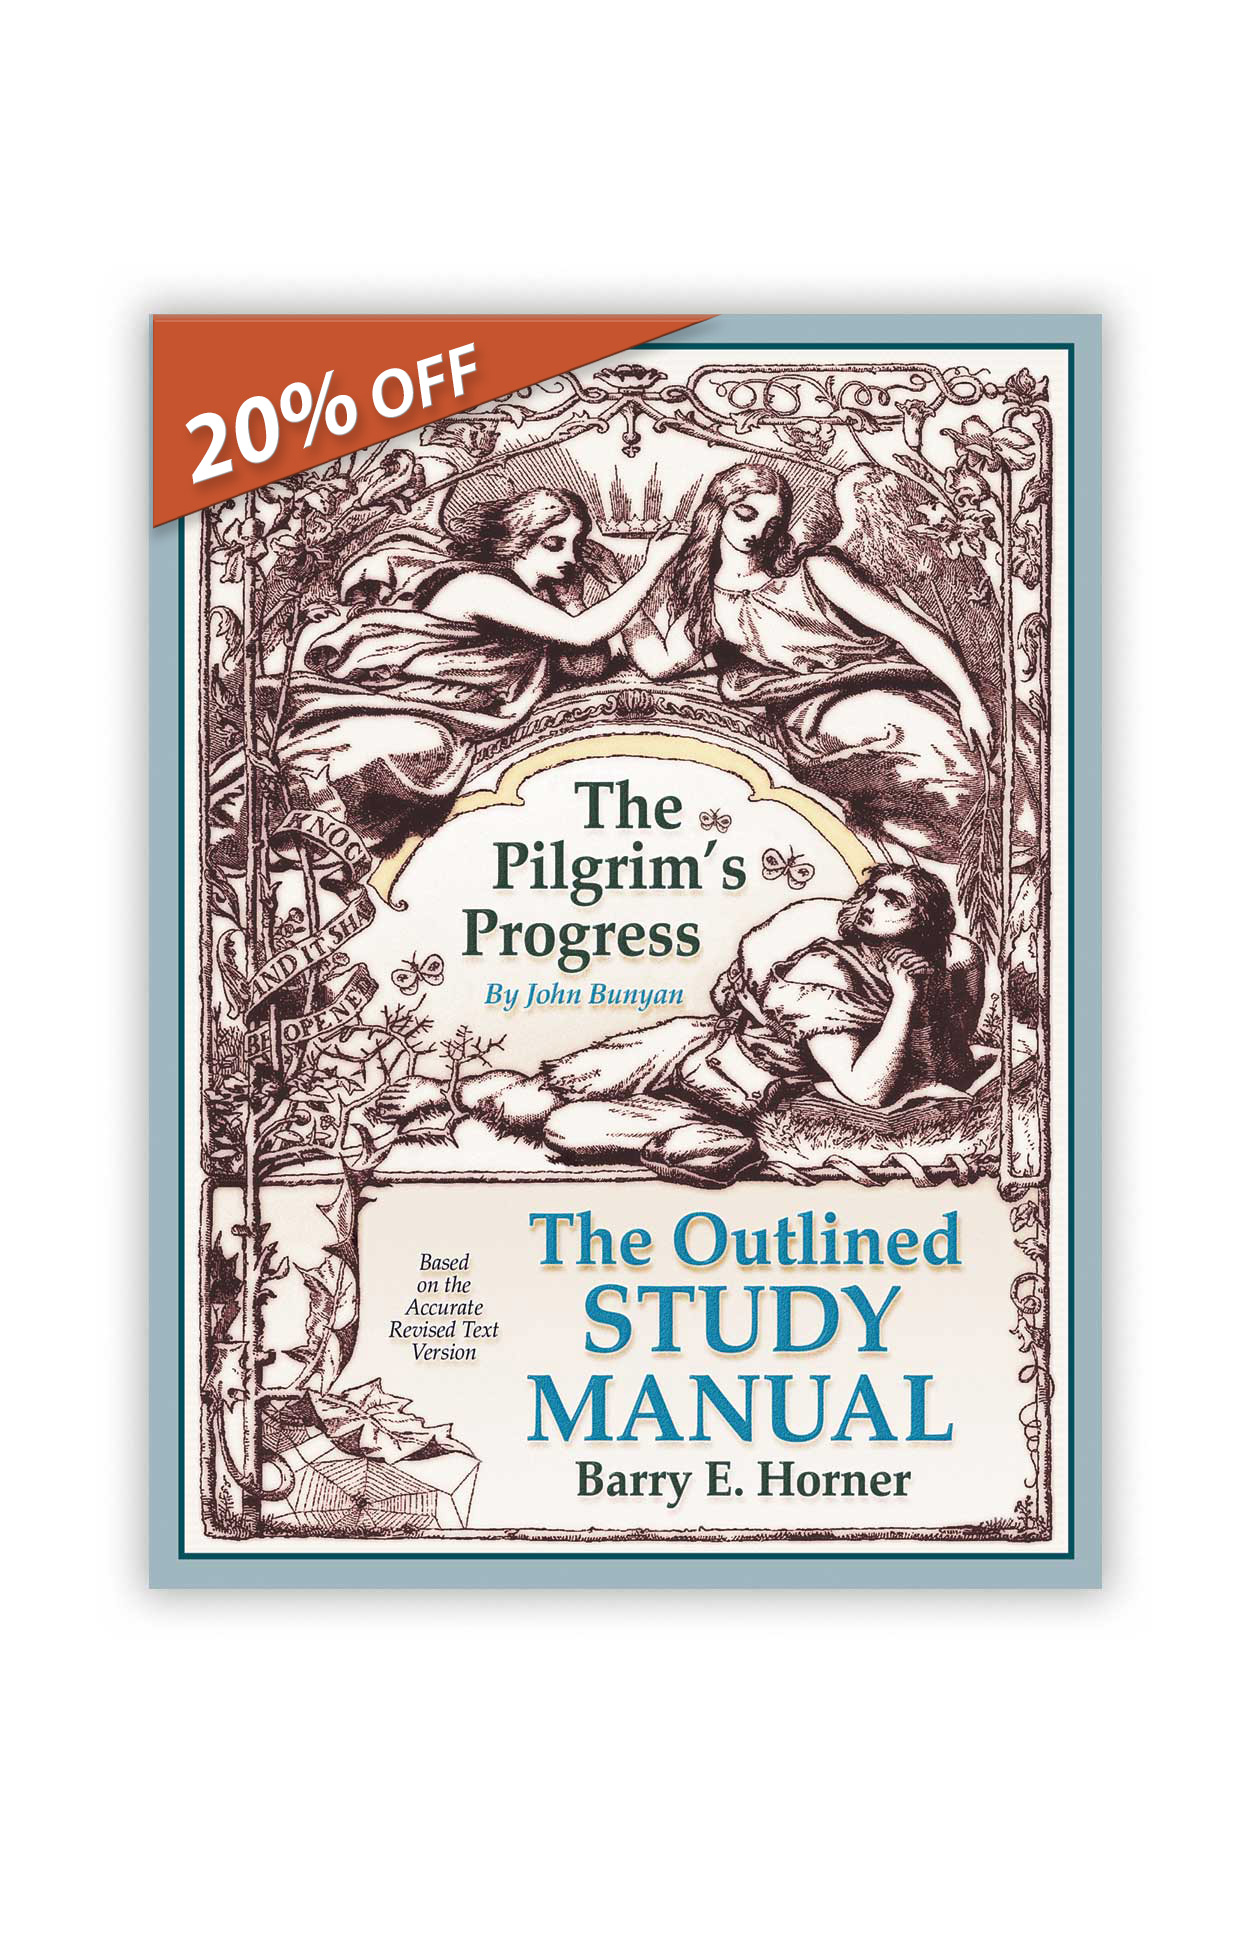 Storenvy coupon: The Outlined Study Manual to The Pilgrim's Progress